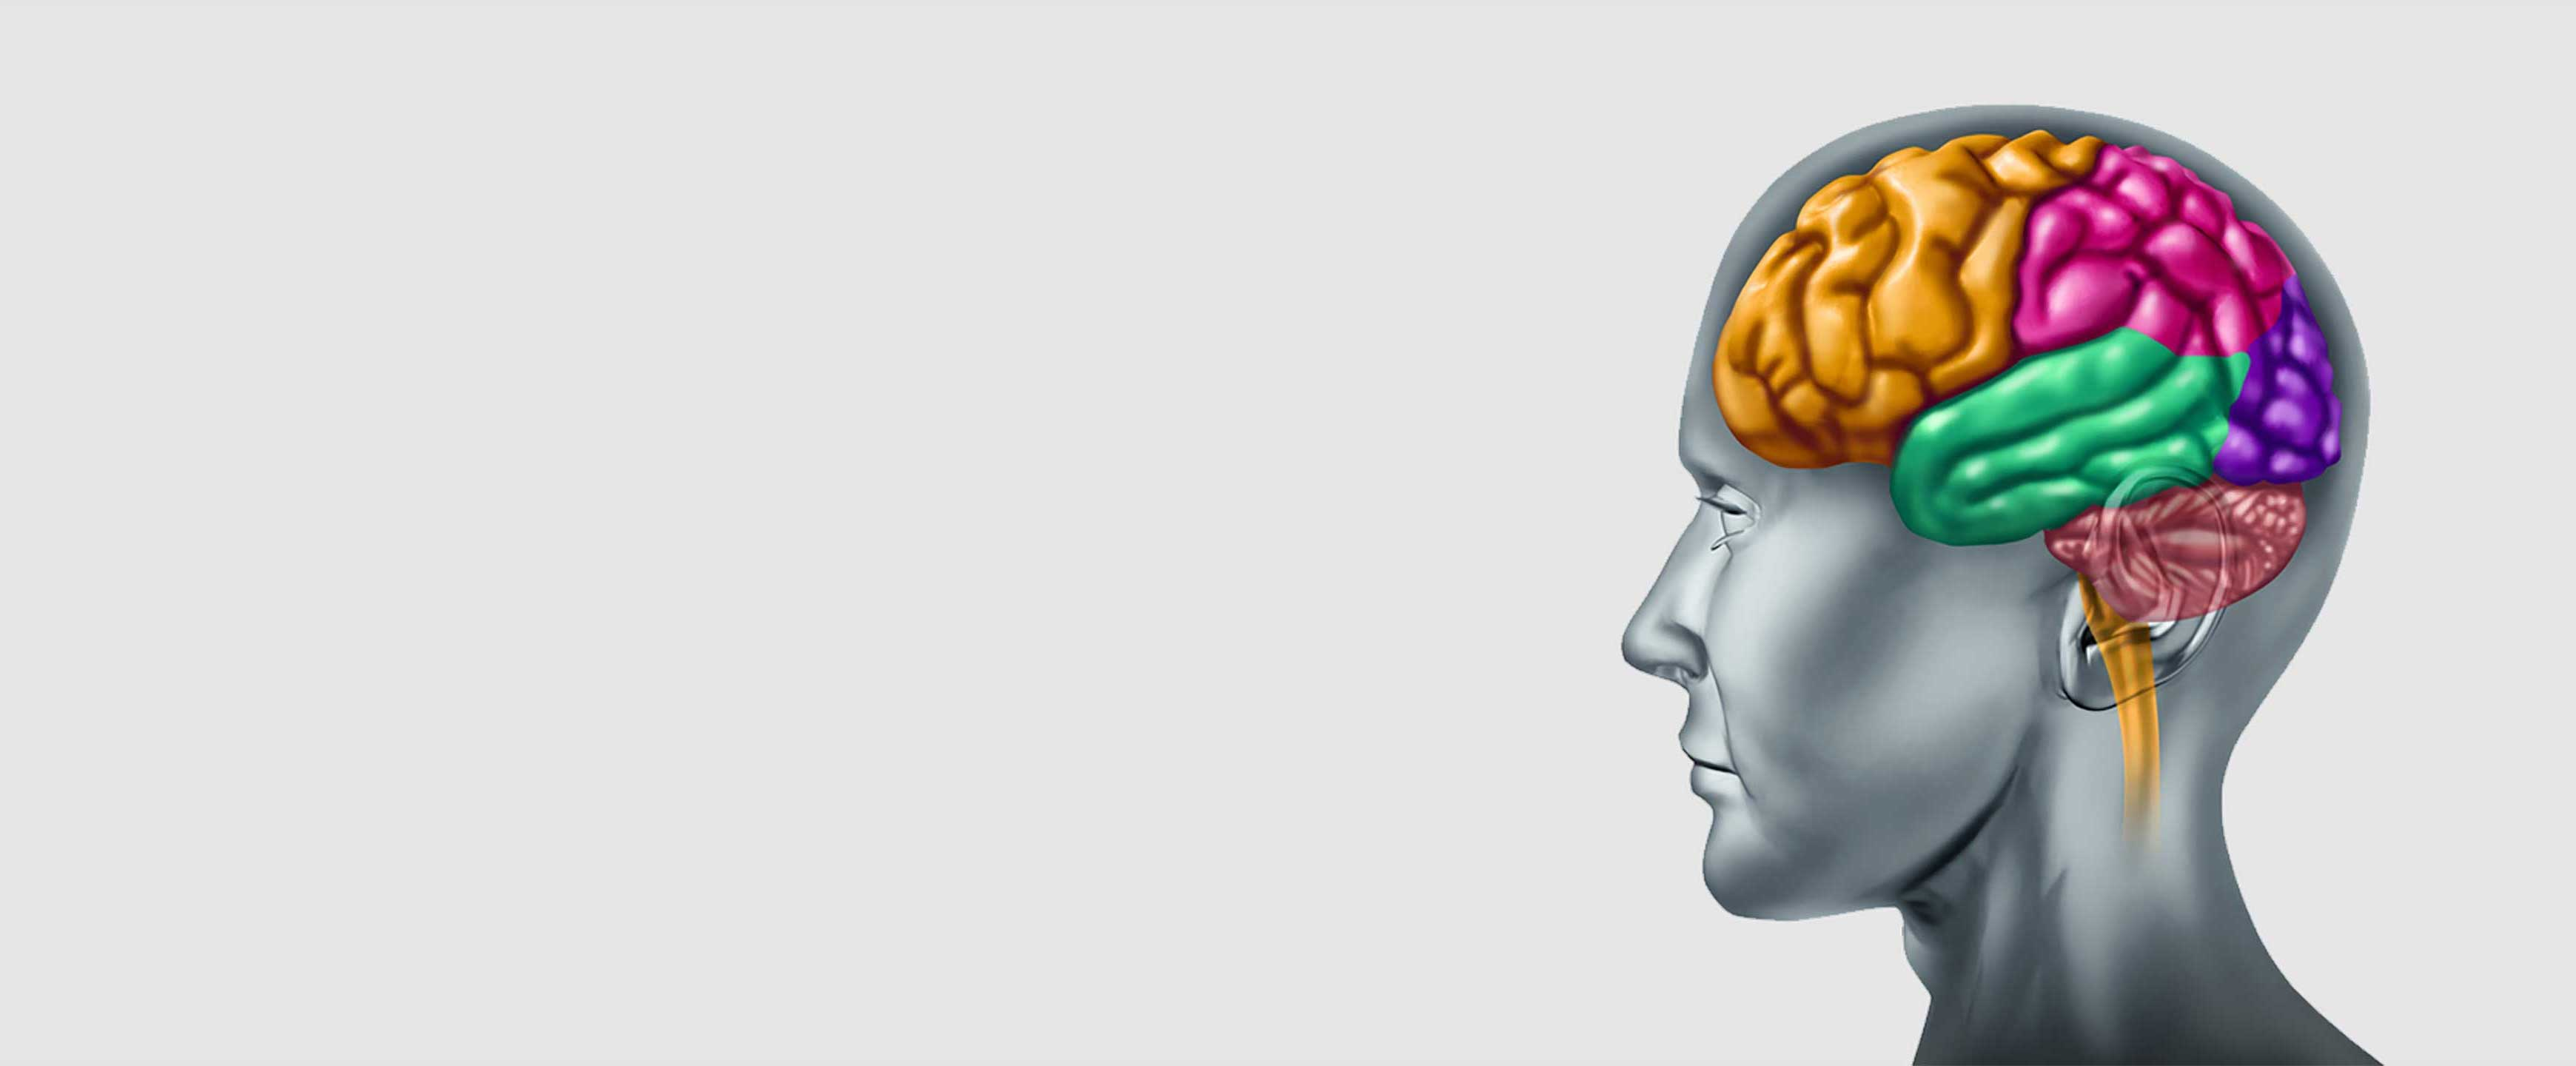 Alt-text for the human brain image in the banner: An image of a human brain signifying patients' will and brain power in driving scientific and medical research and development.